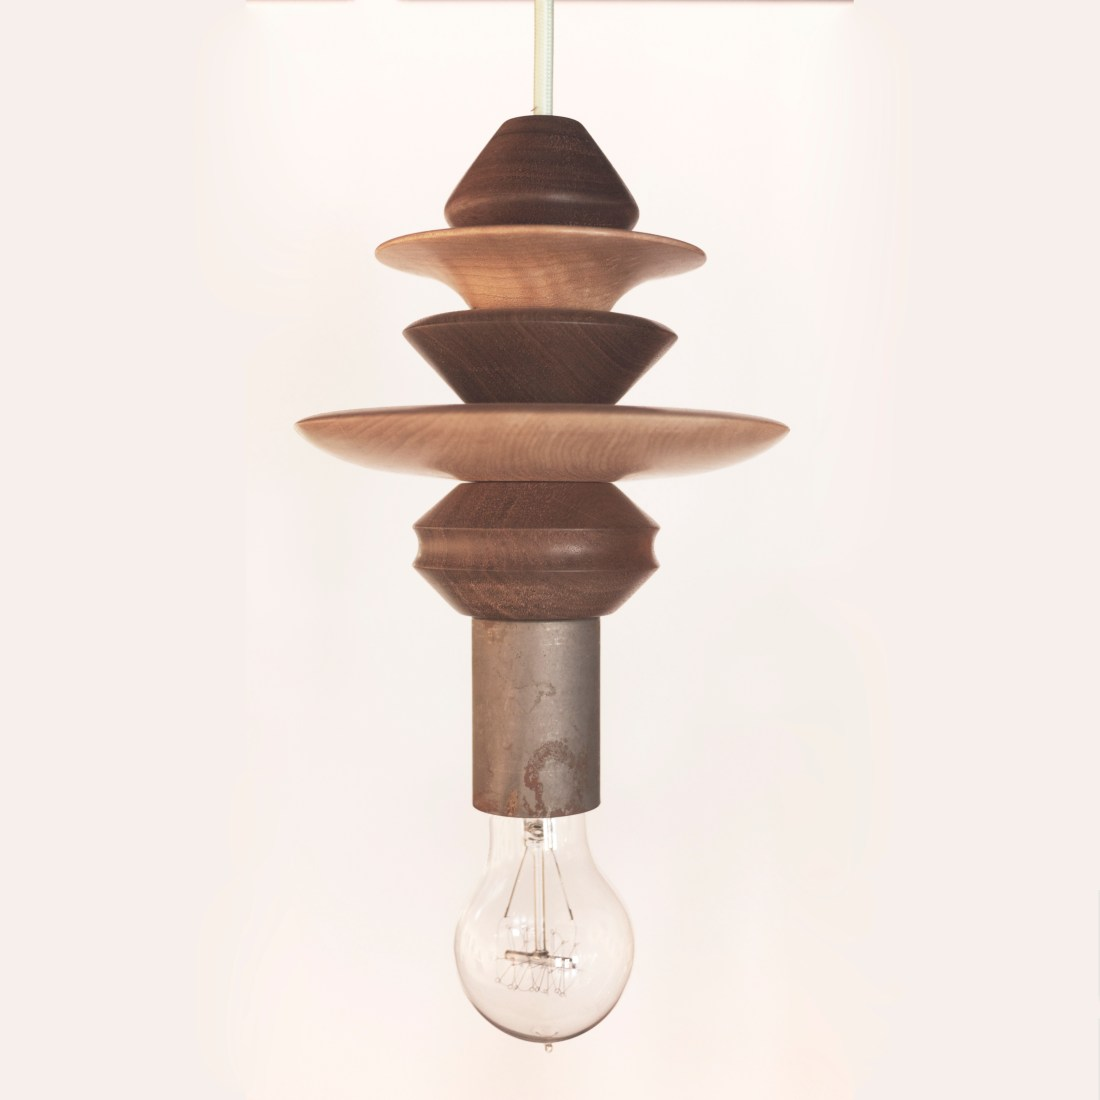 Solid wood pendant lighting for home, office, and kitchen